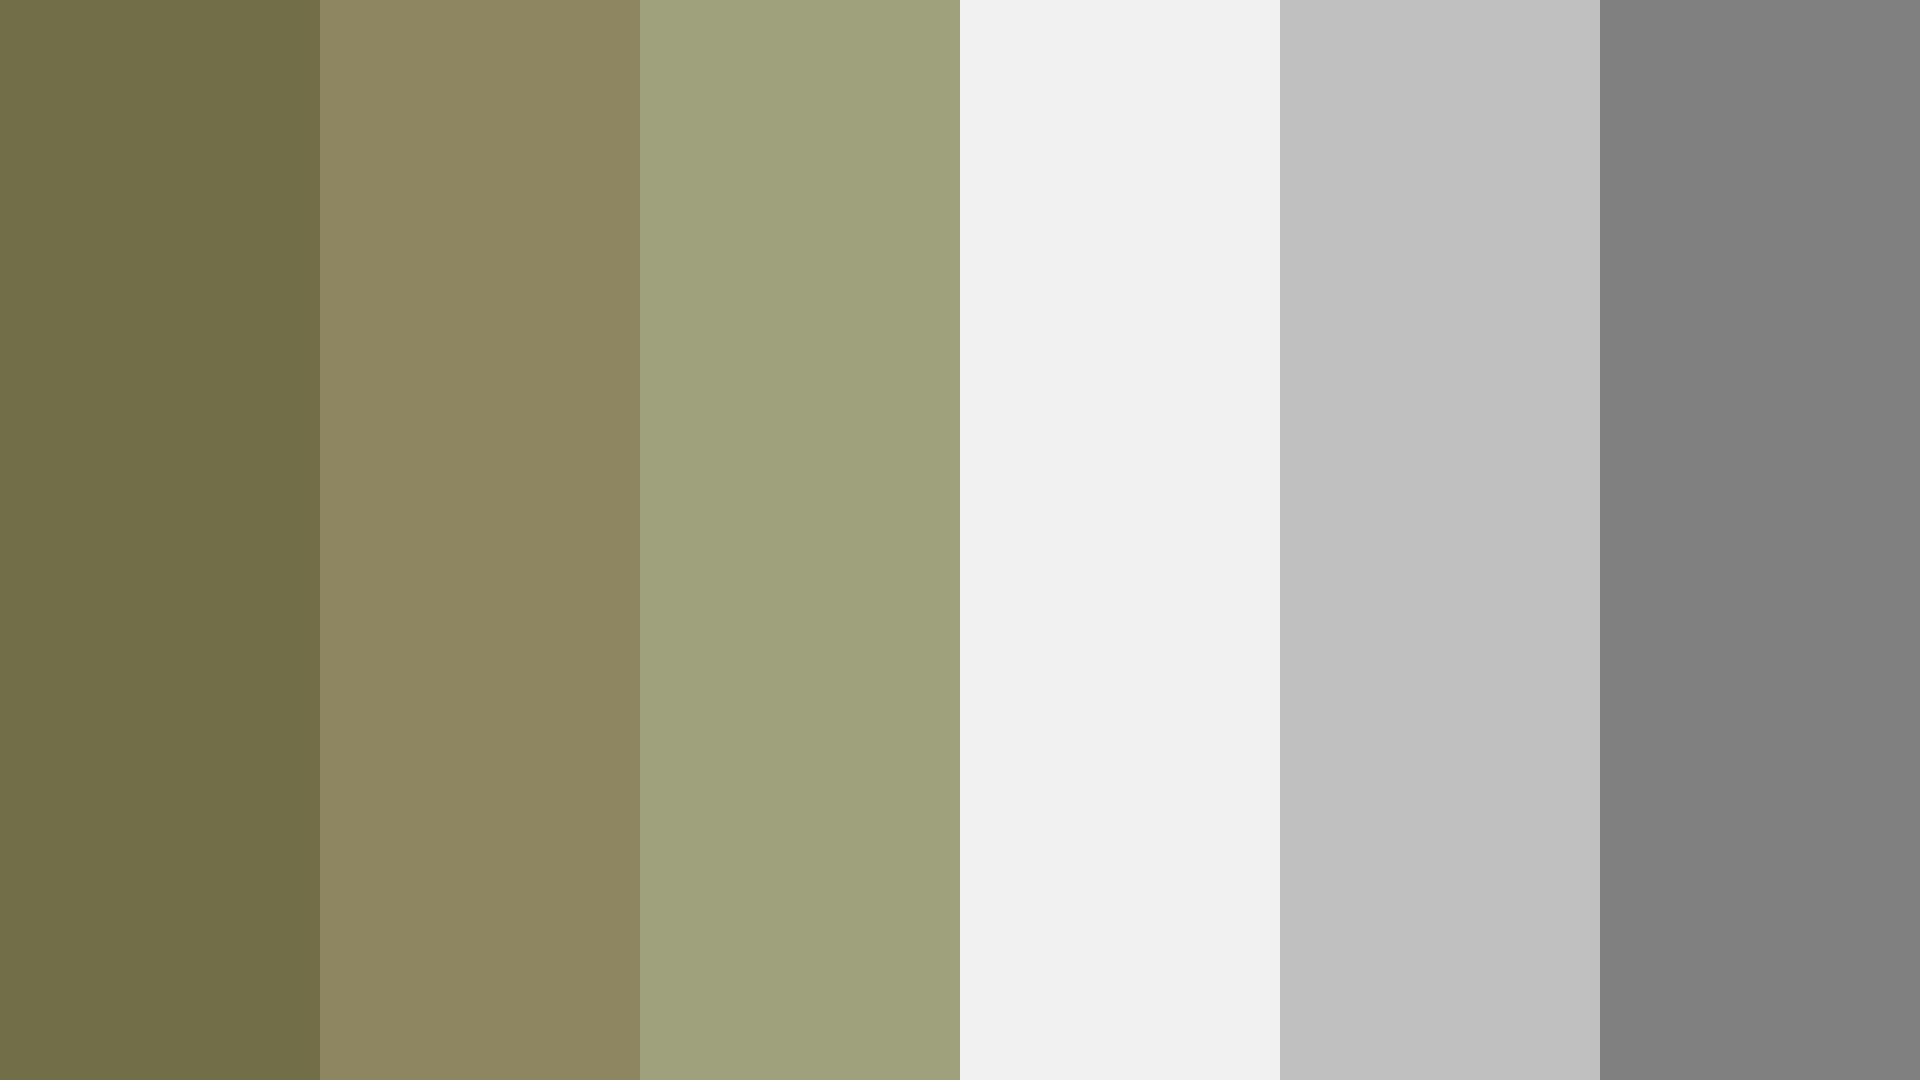 Dull Green And Gray Color Palette